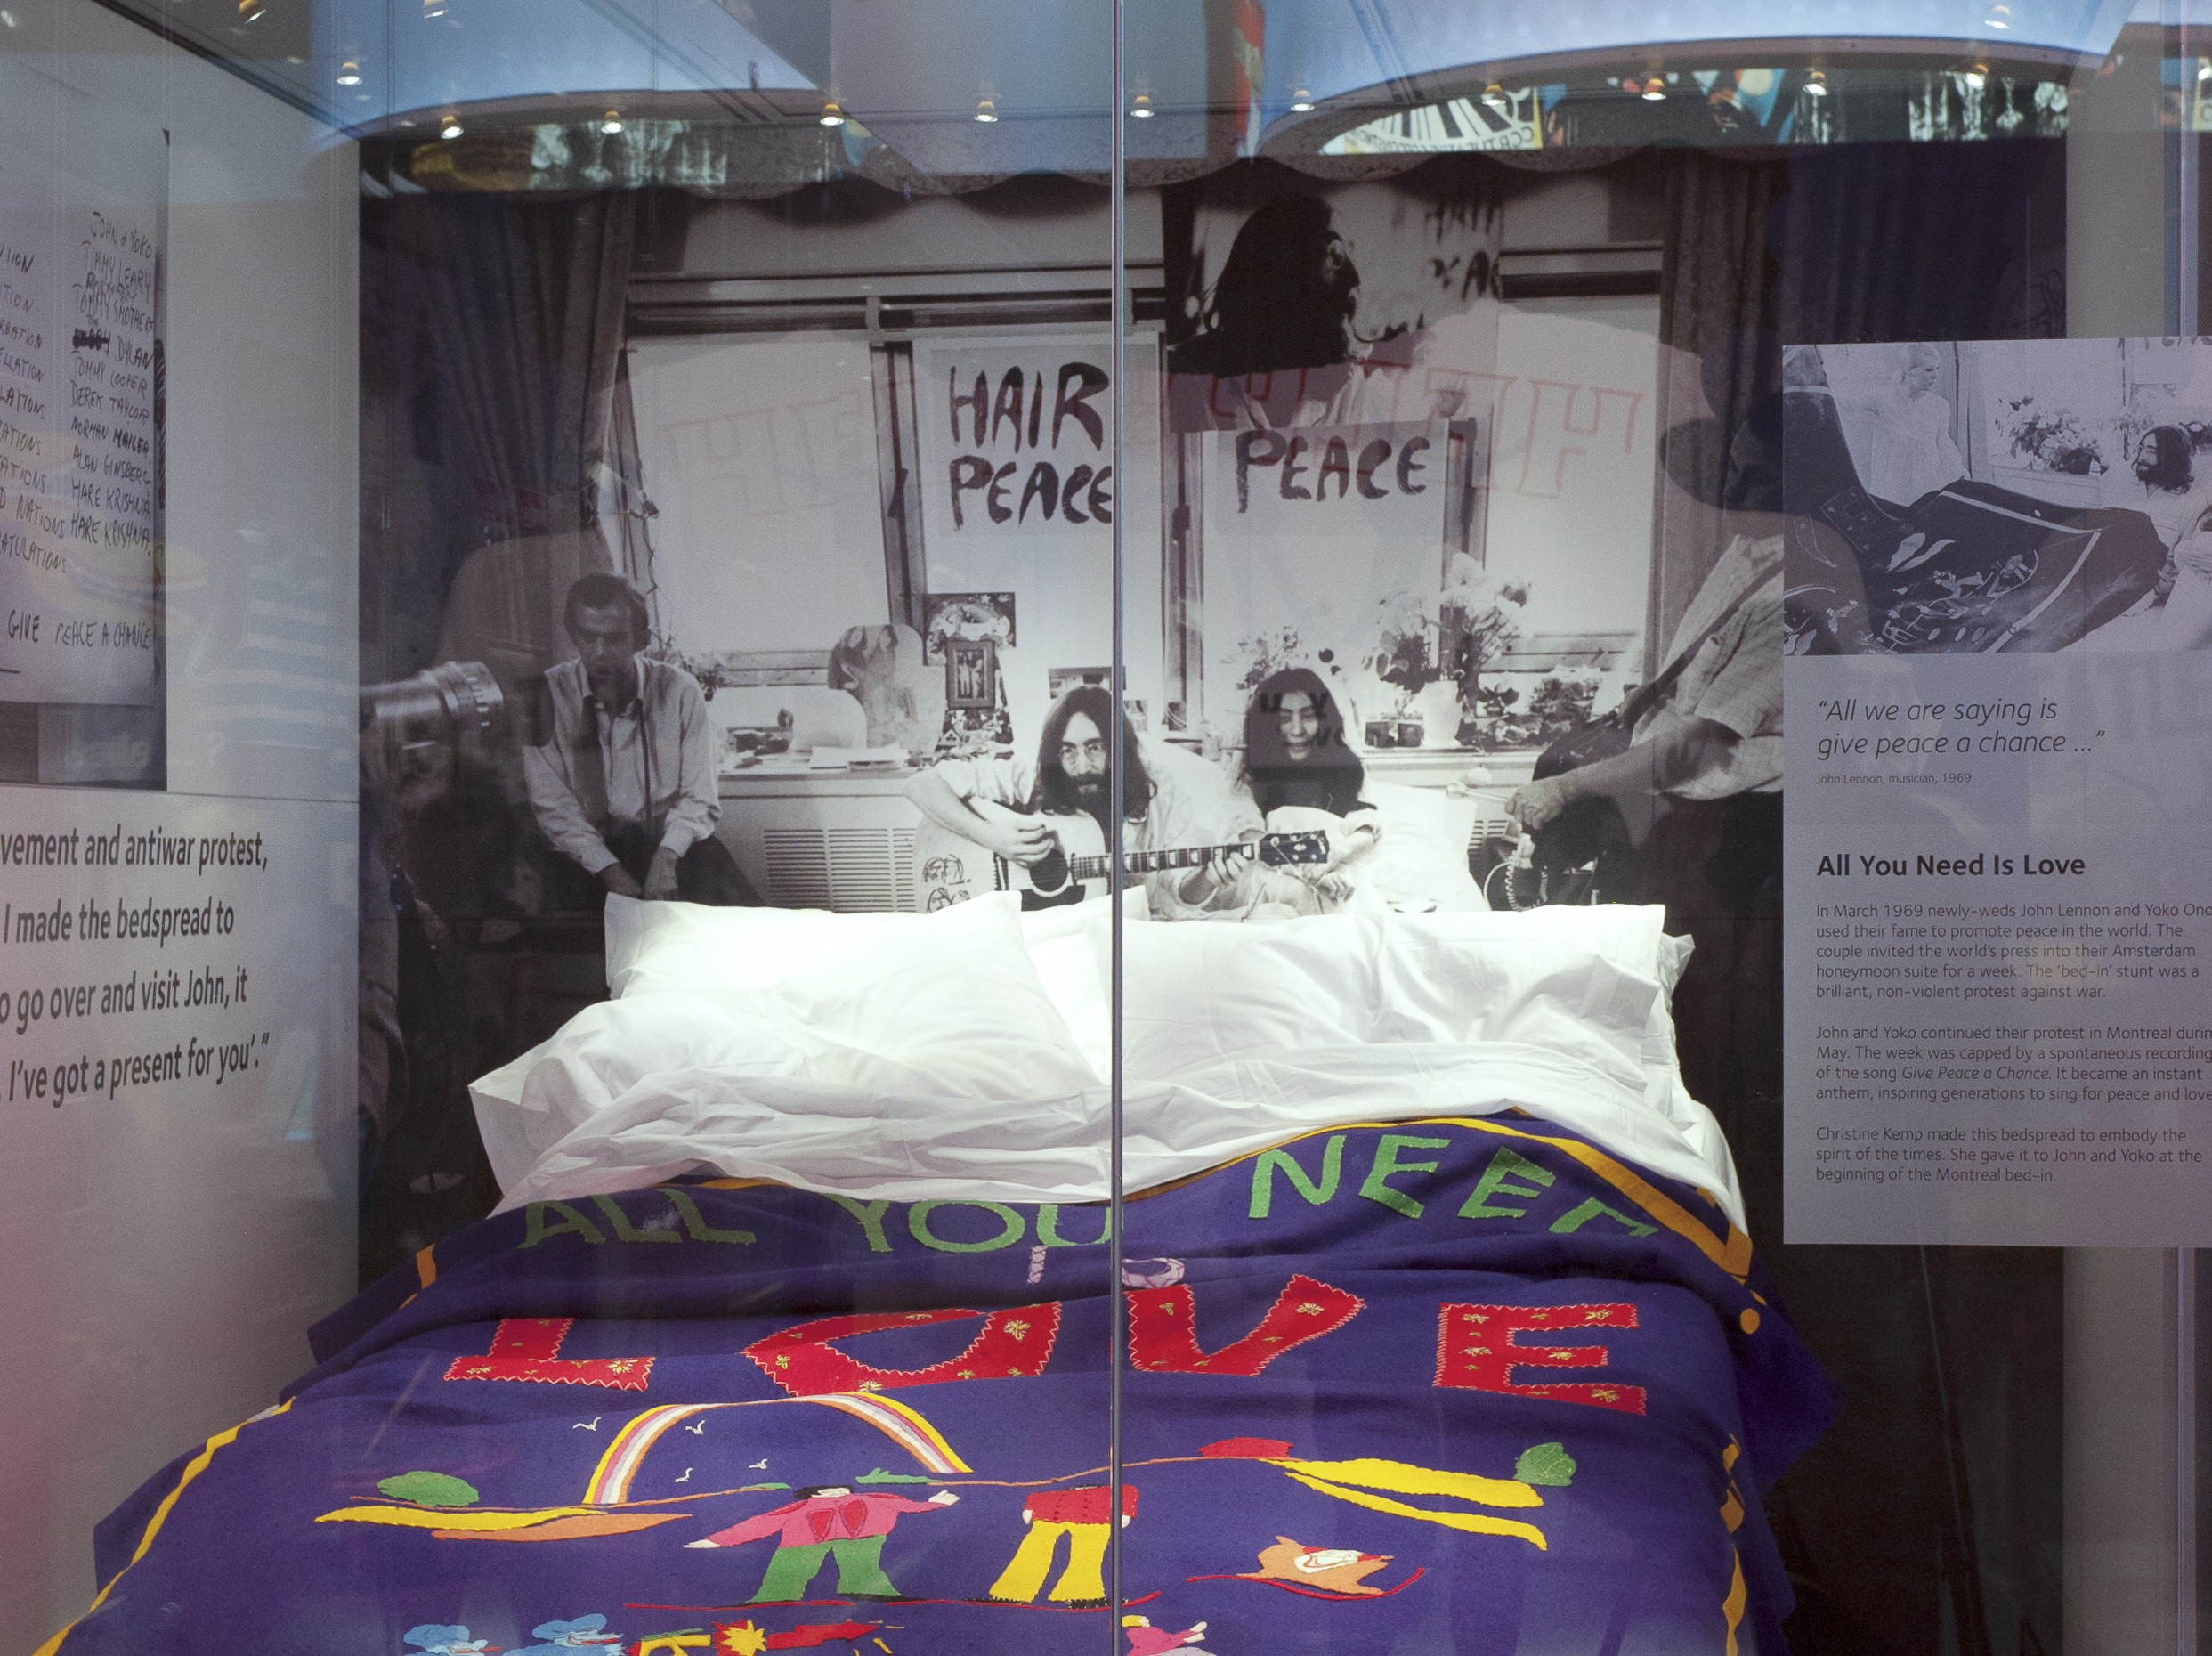 A glass display at the Museum of Liverpool containing John Lennon and Yoko Ono's 1969 peace protest bedspread, lit by Sutton Vane Associates.